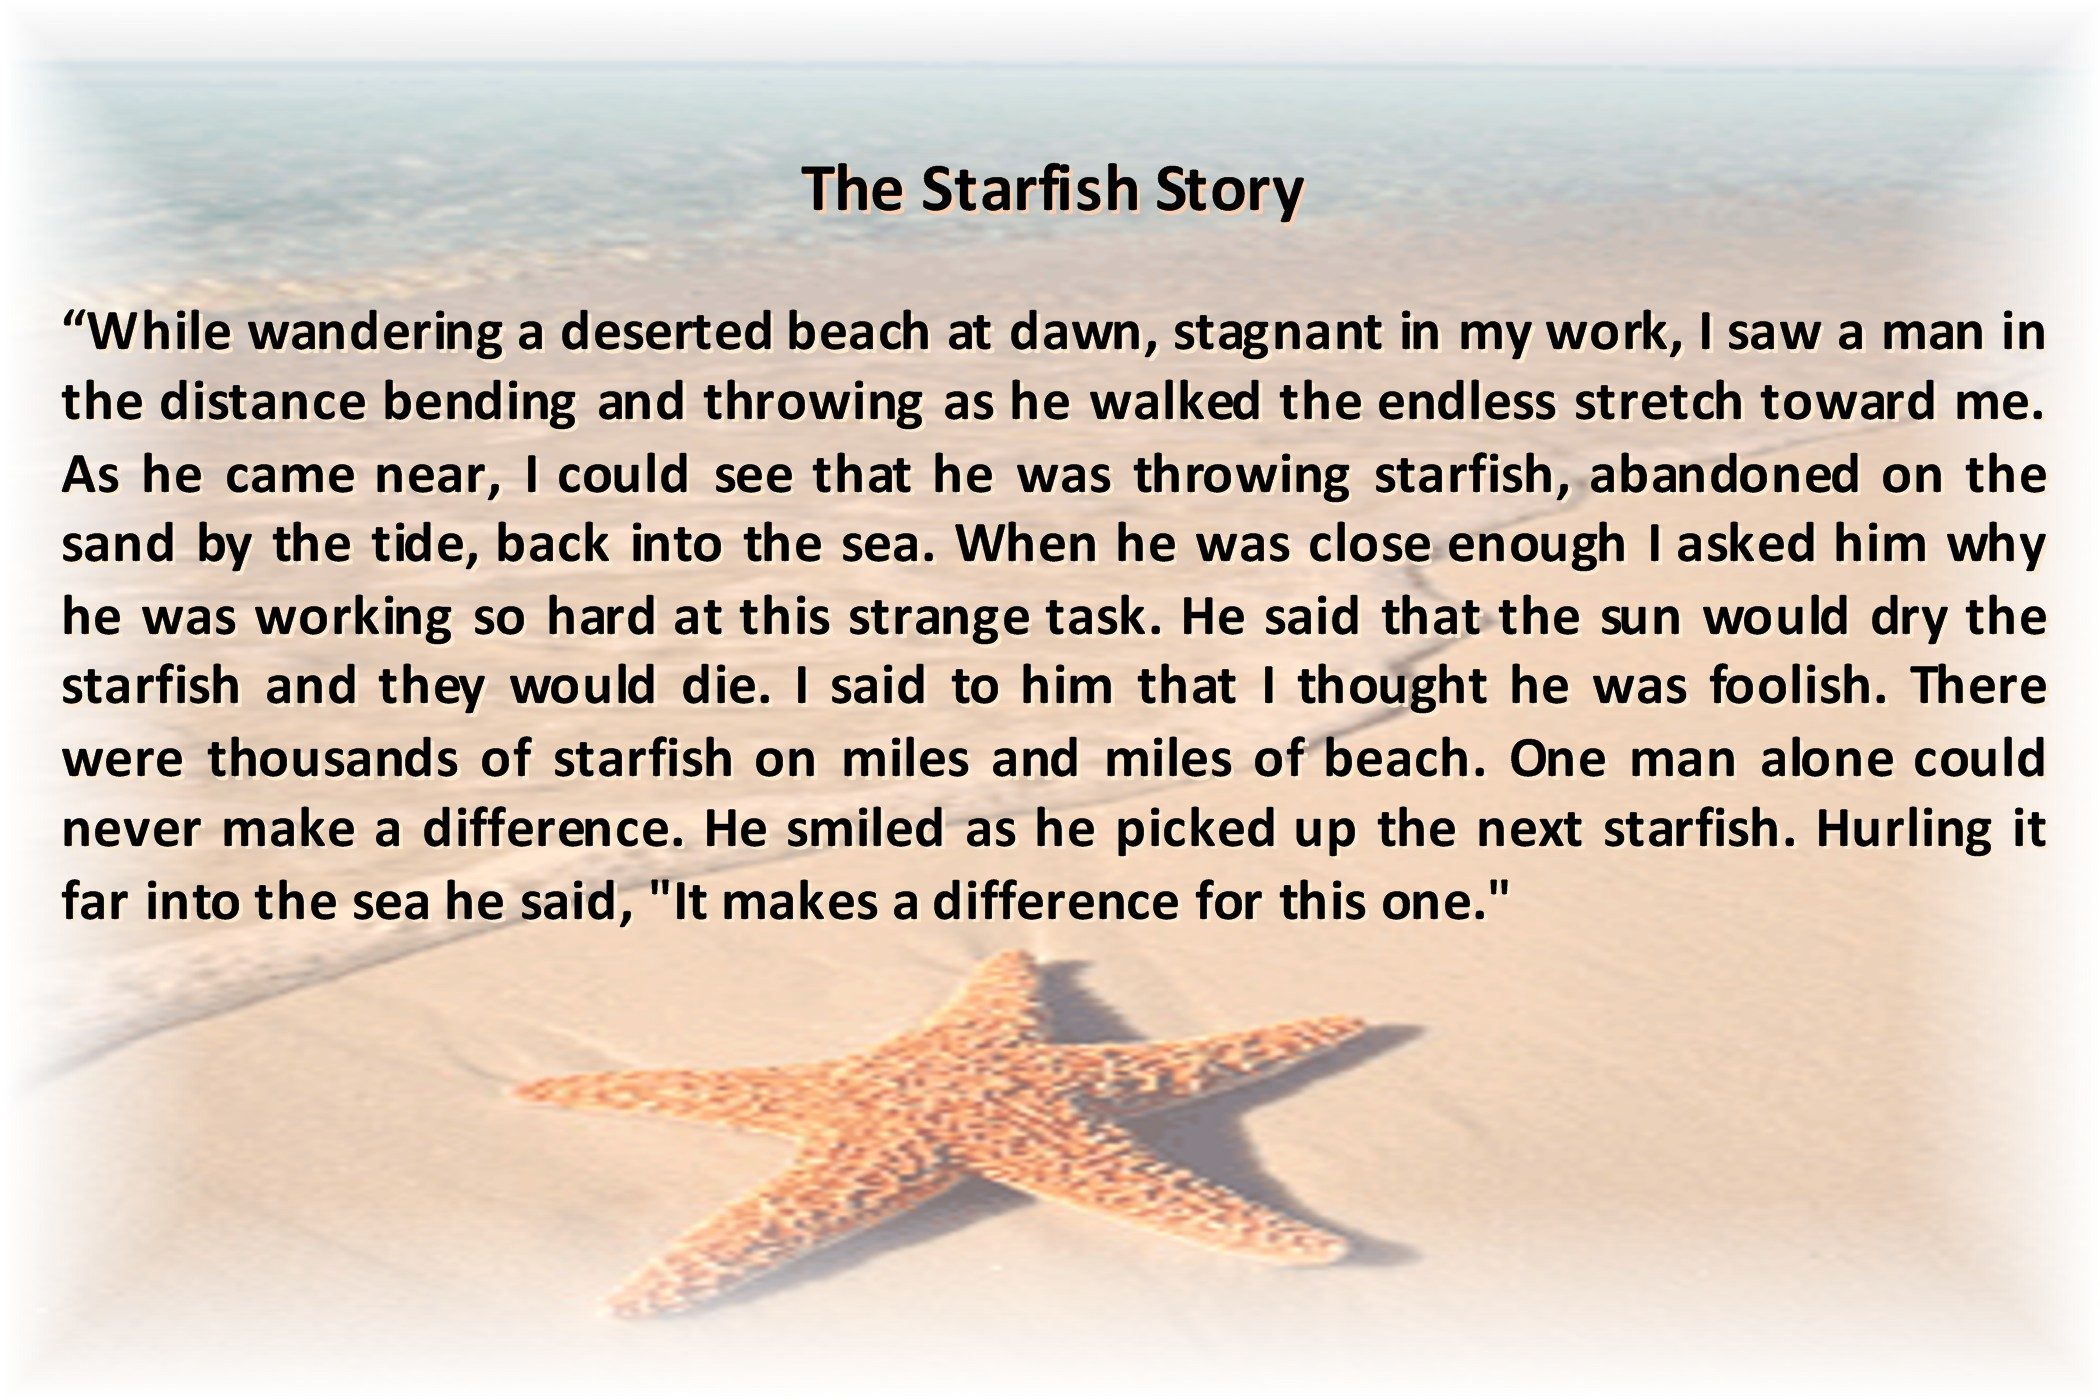 essay on starfish can somebody else take the call blog w life can somebody else take the call blog w life uncategorizedstarfish story